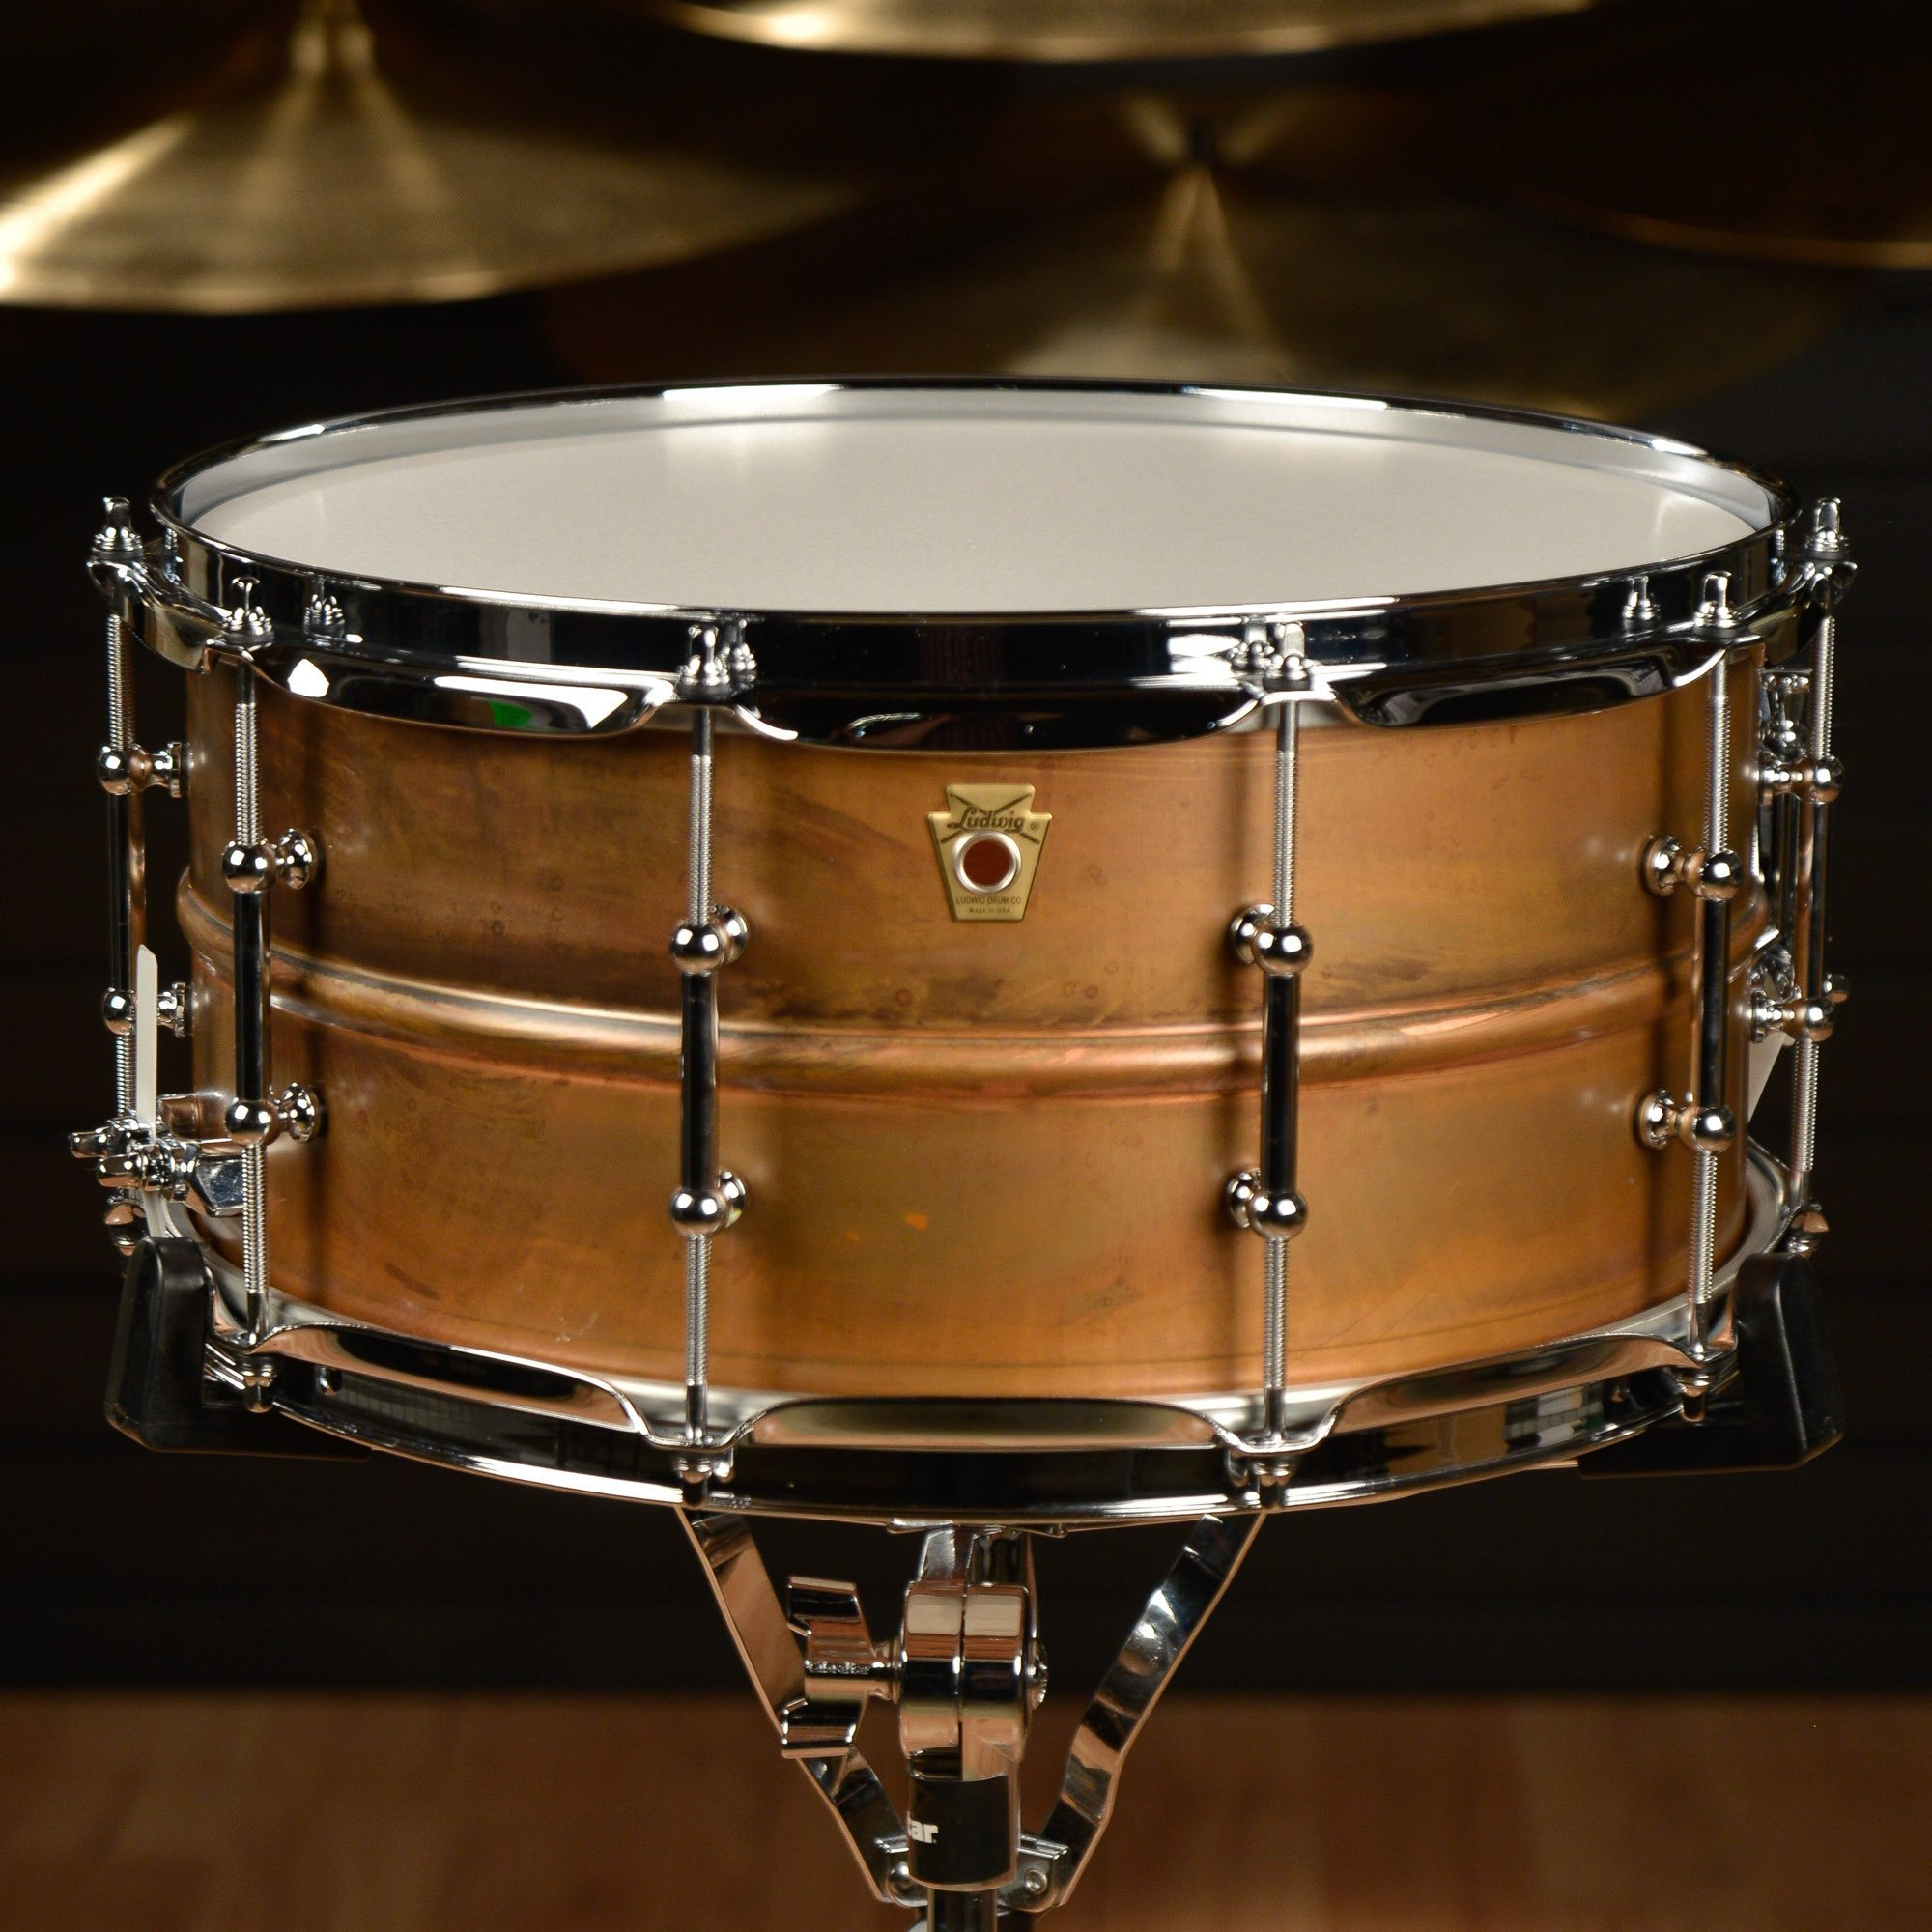 Ludwig Copper Phonic Smooth Snare Drum 14 x 6.5 in. Raw Smooth Finish with Tube Lugs by Ludwig (Image #1)